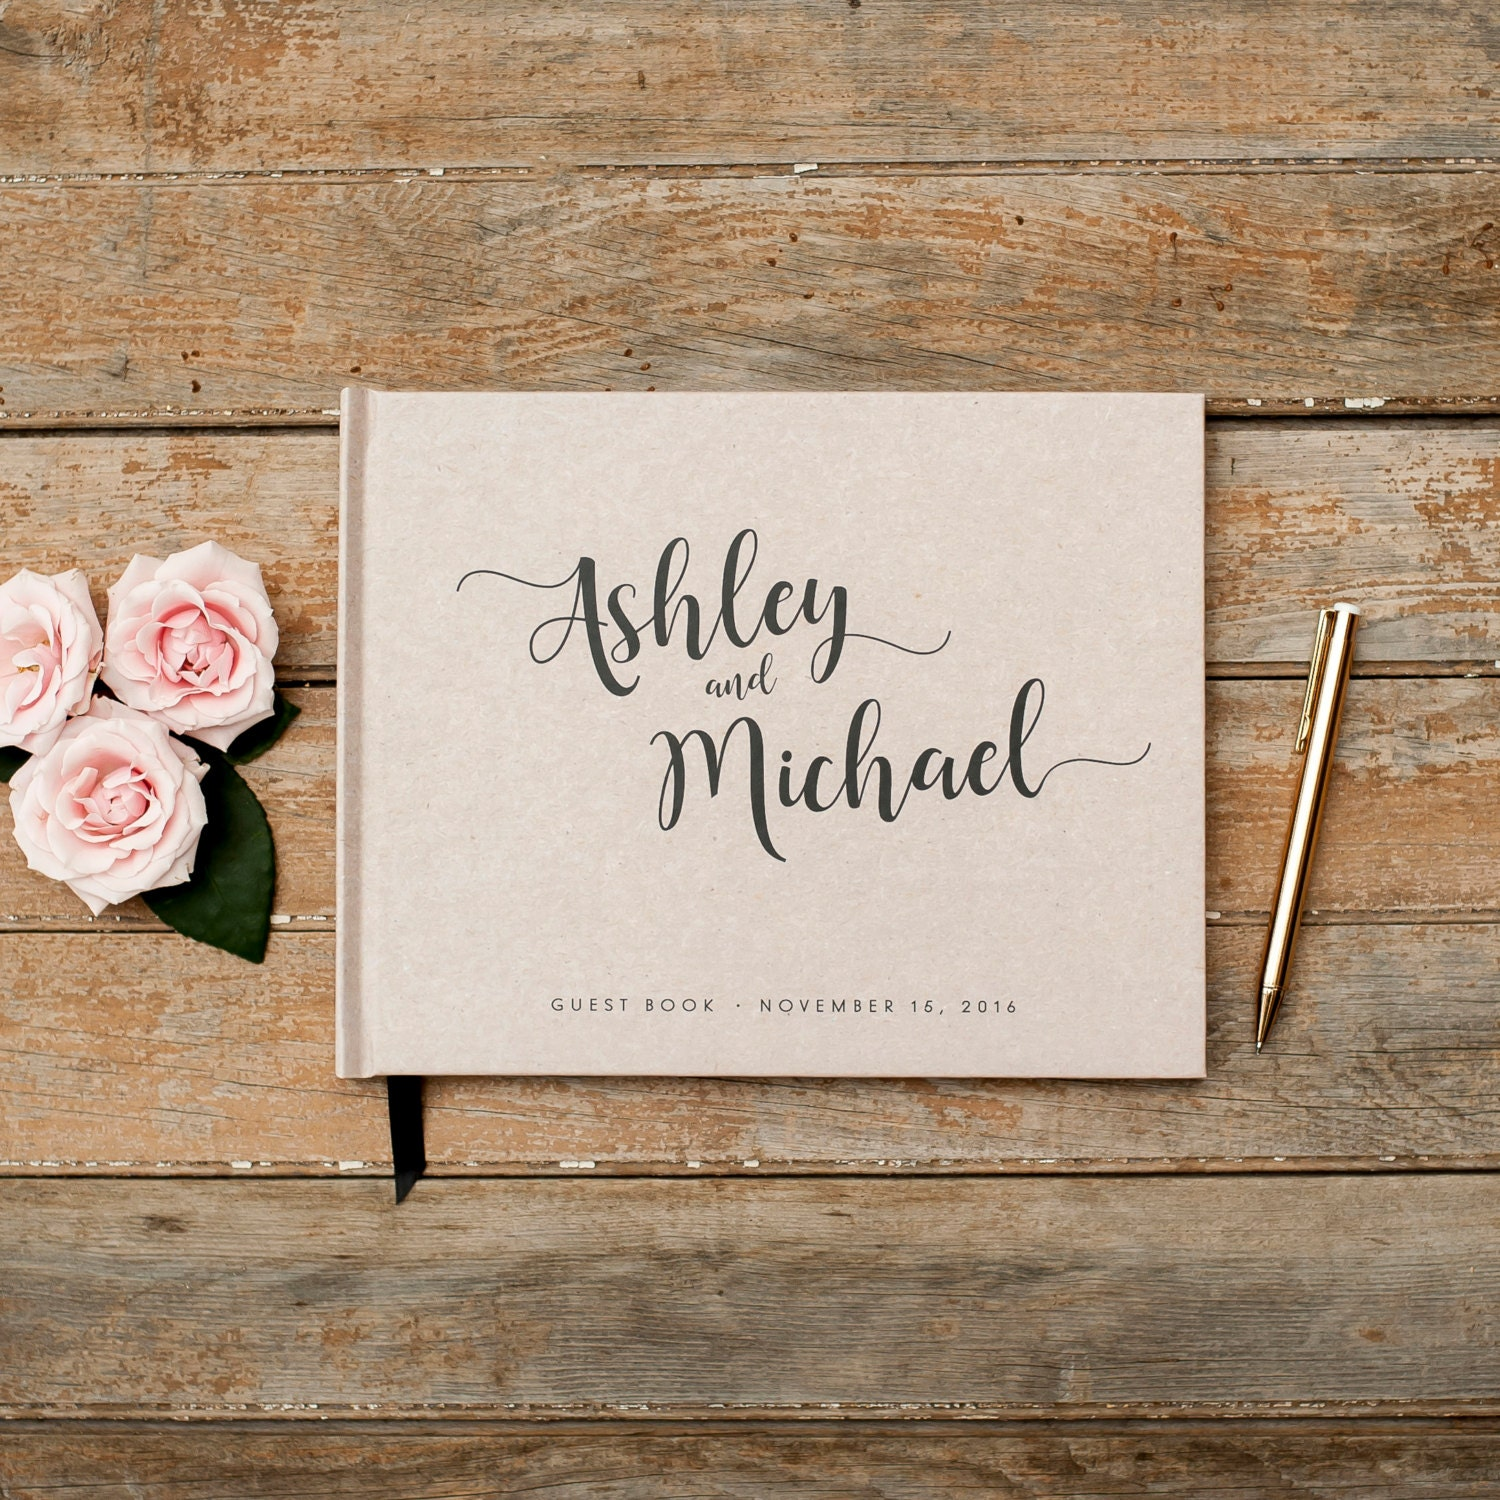 Free Wedding Book: Wedding Guest Book Horizontal Landscape Guestbook Sign In Book